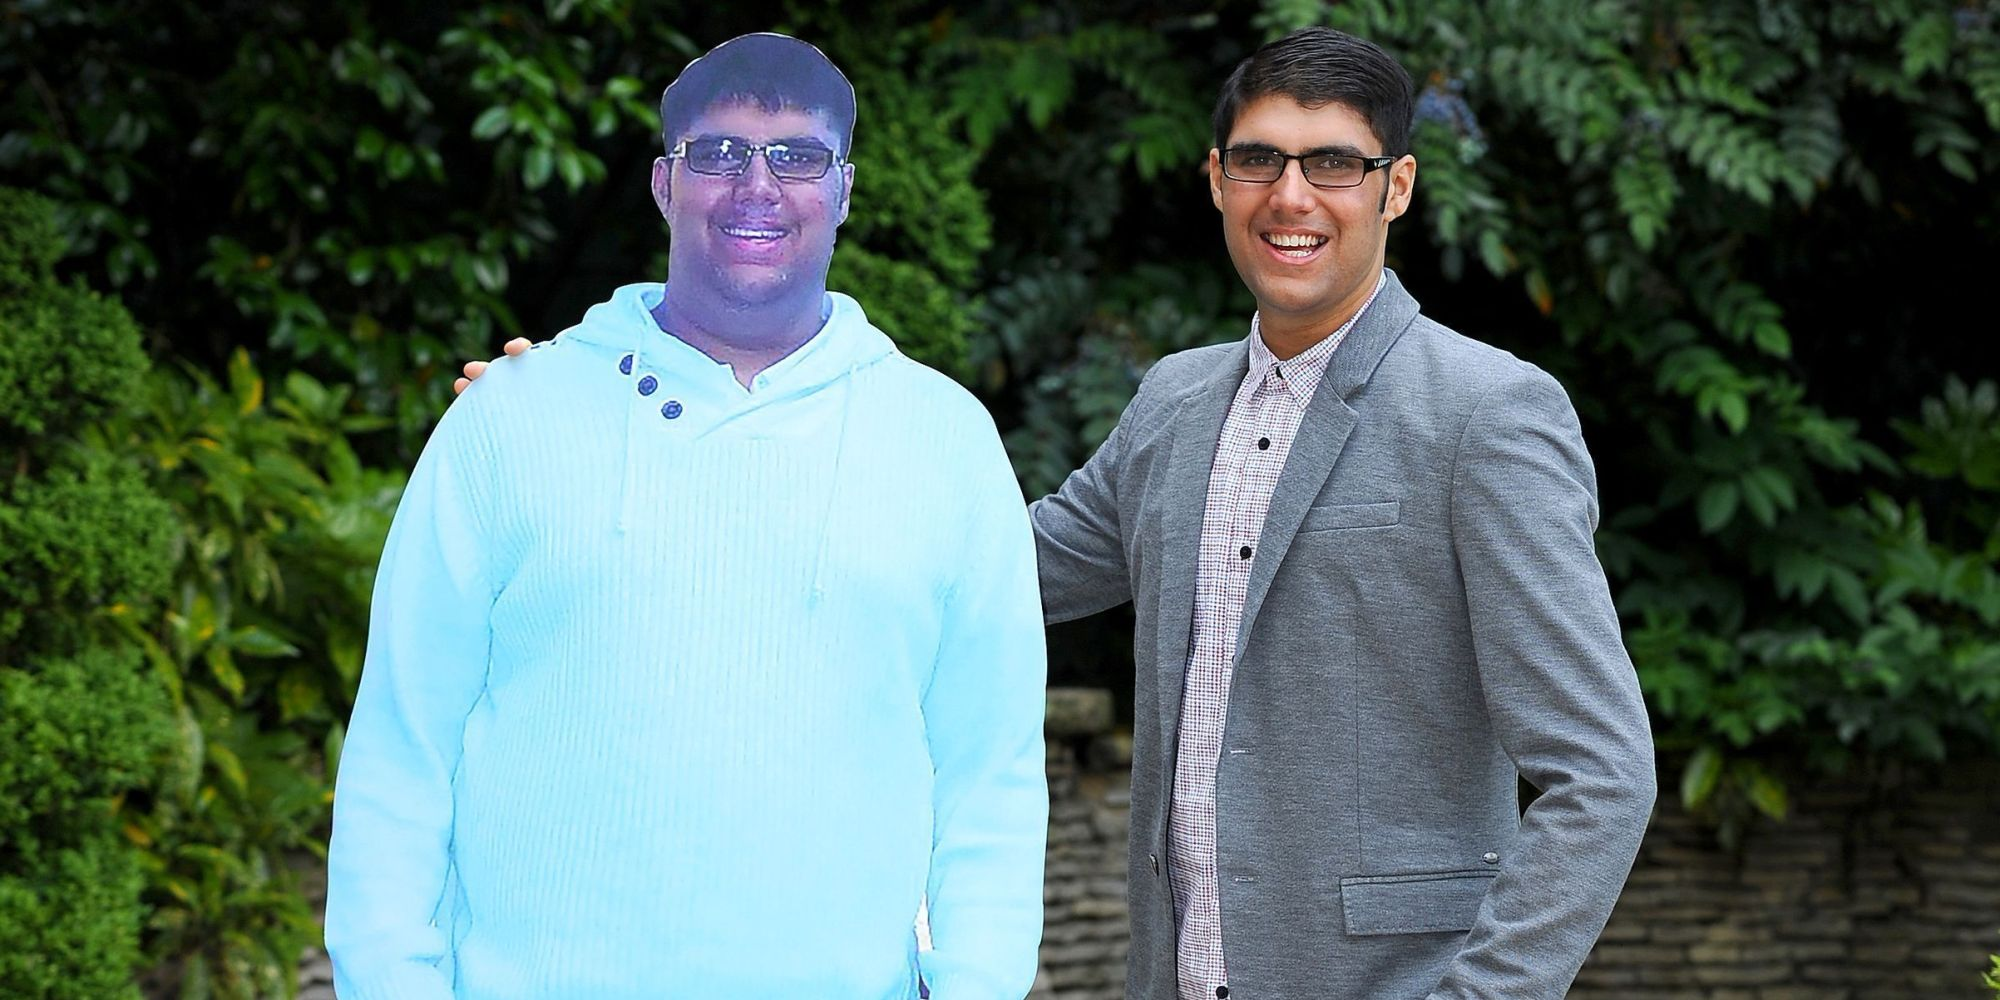 ... Losing 8 Stone To Set A Good Example To His Patients | HuffPost UK